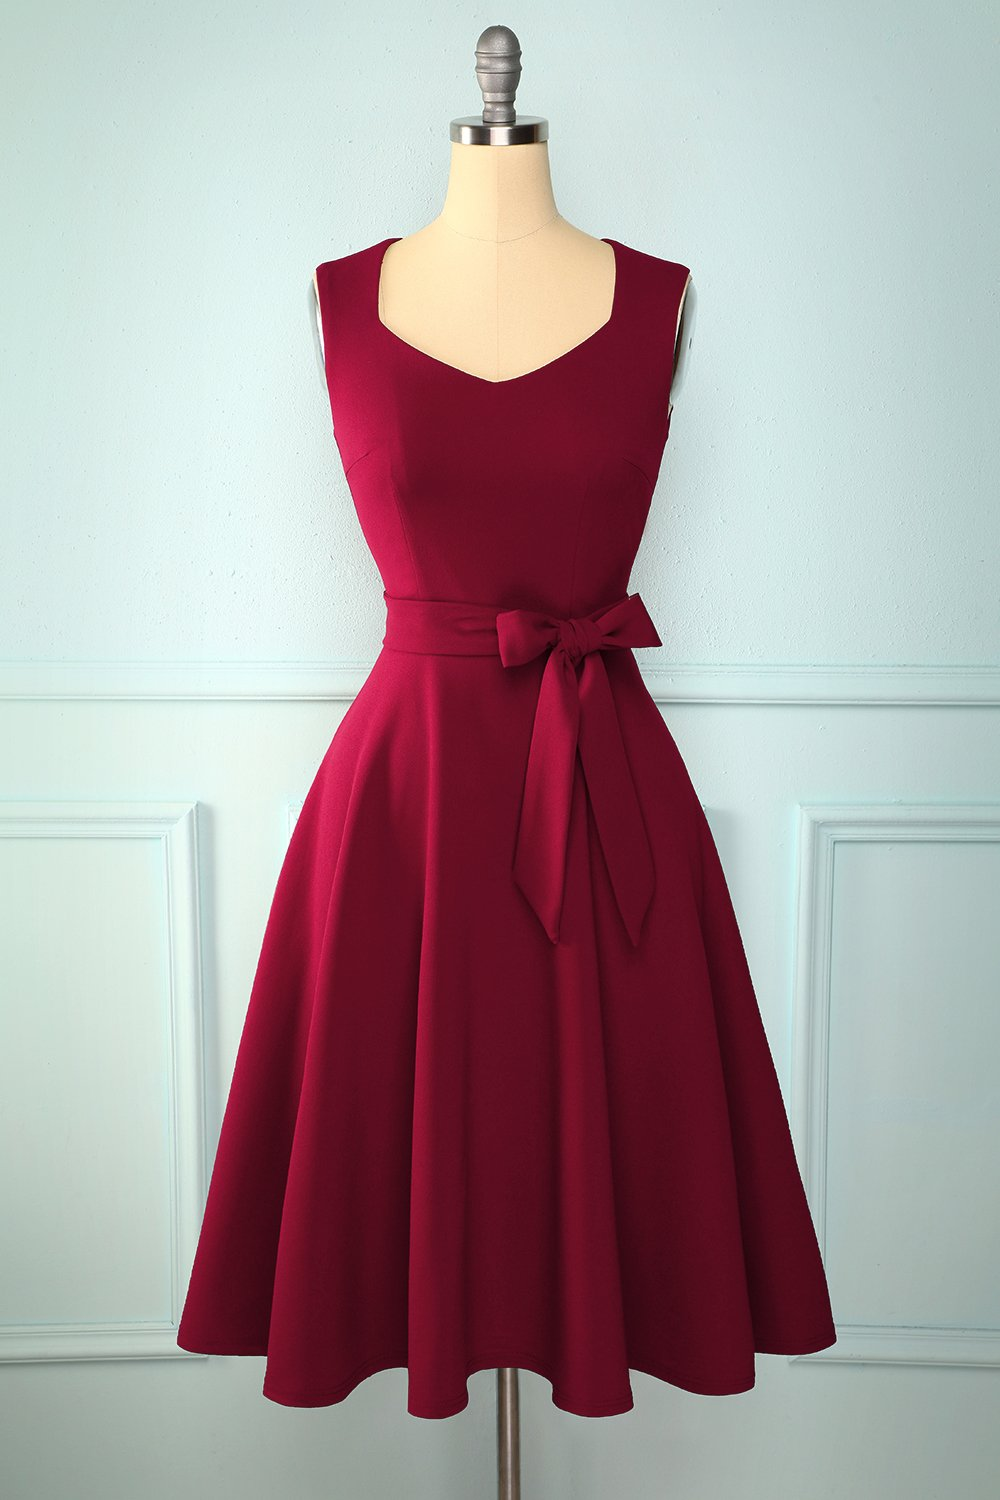 Robe bordeaux douce